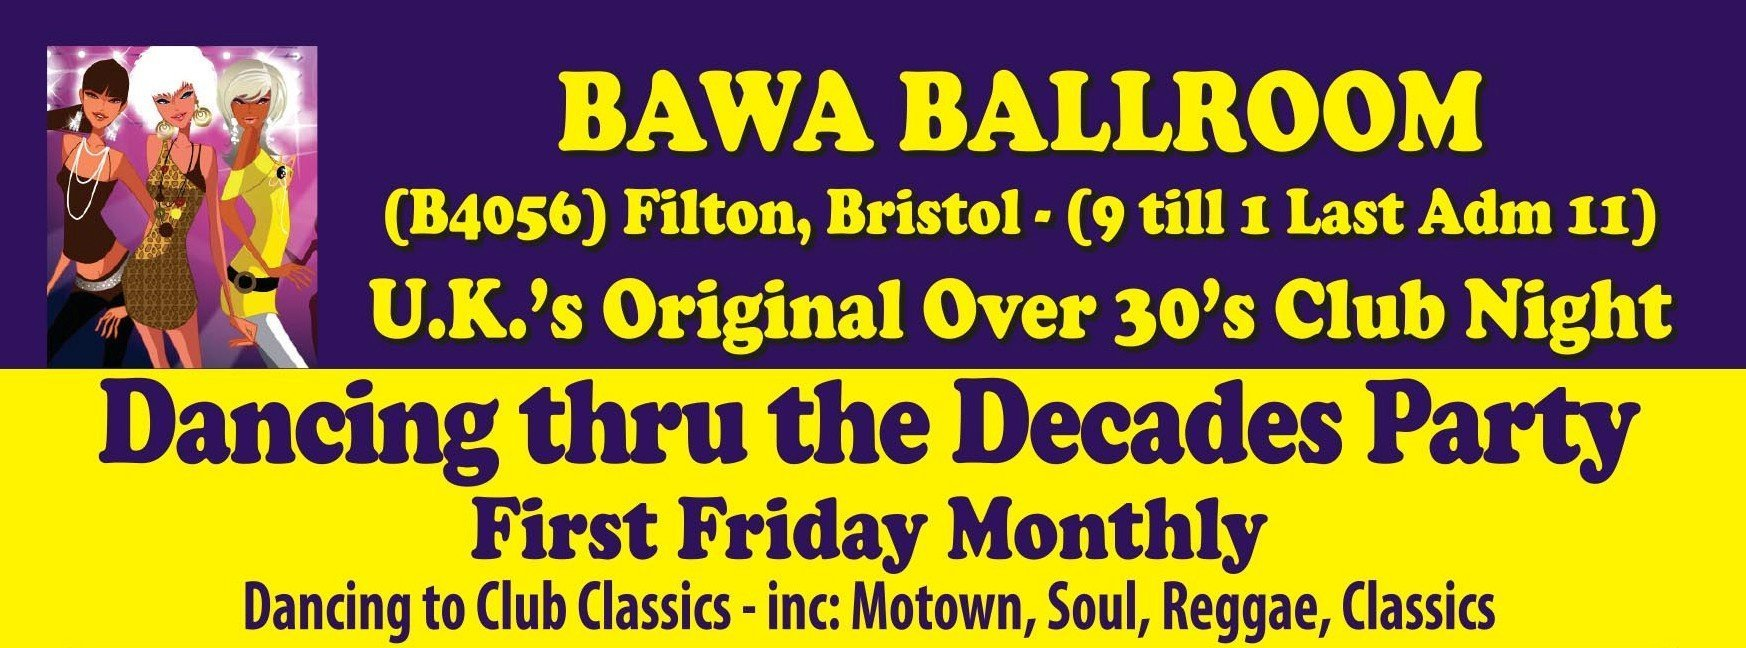 Bawa Bristol Over 30s nights poster